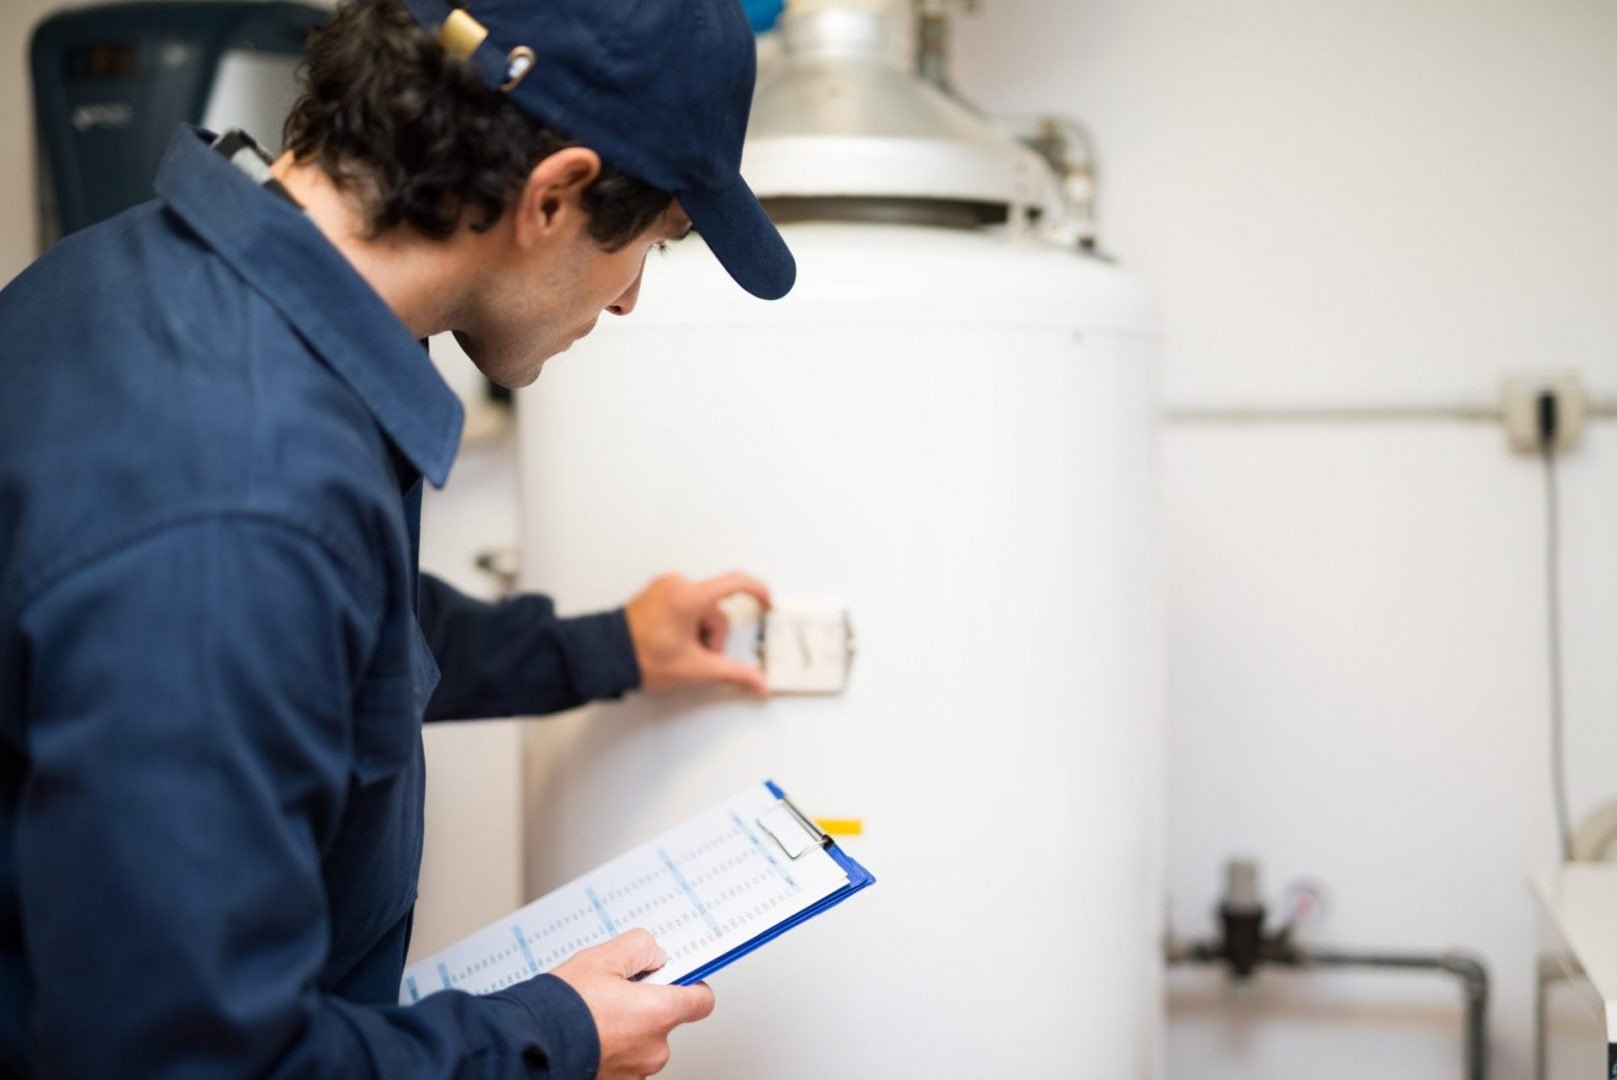 plumbing services like a water heater replacement needs to abide by social distancing for the foreseeable future